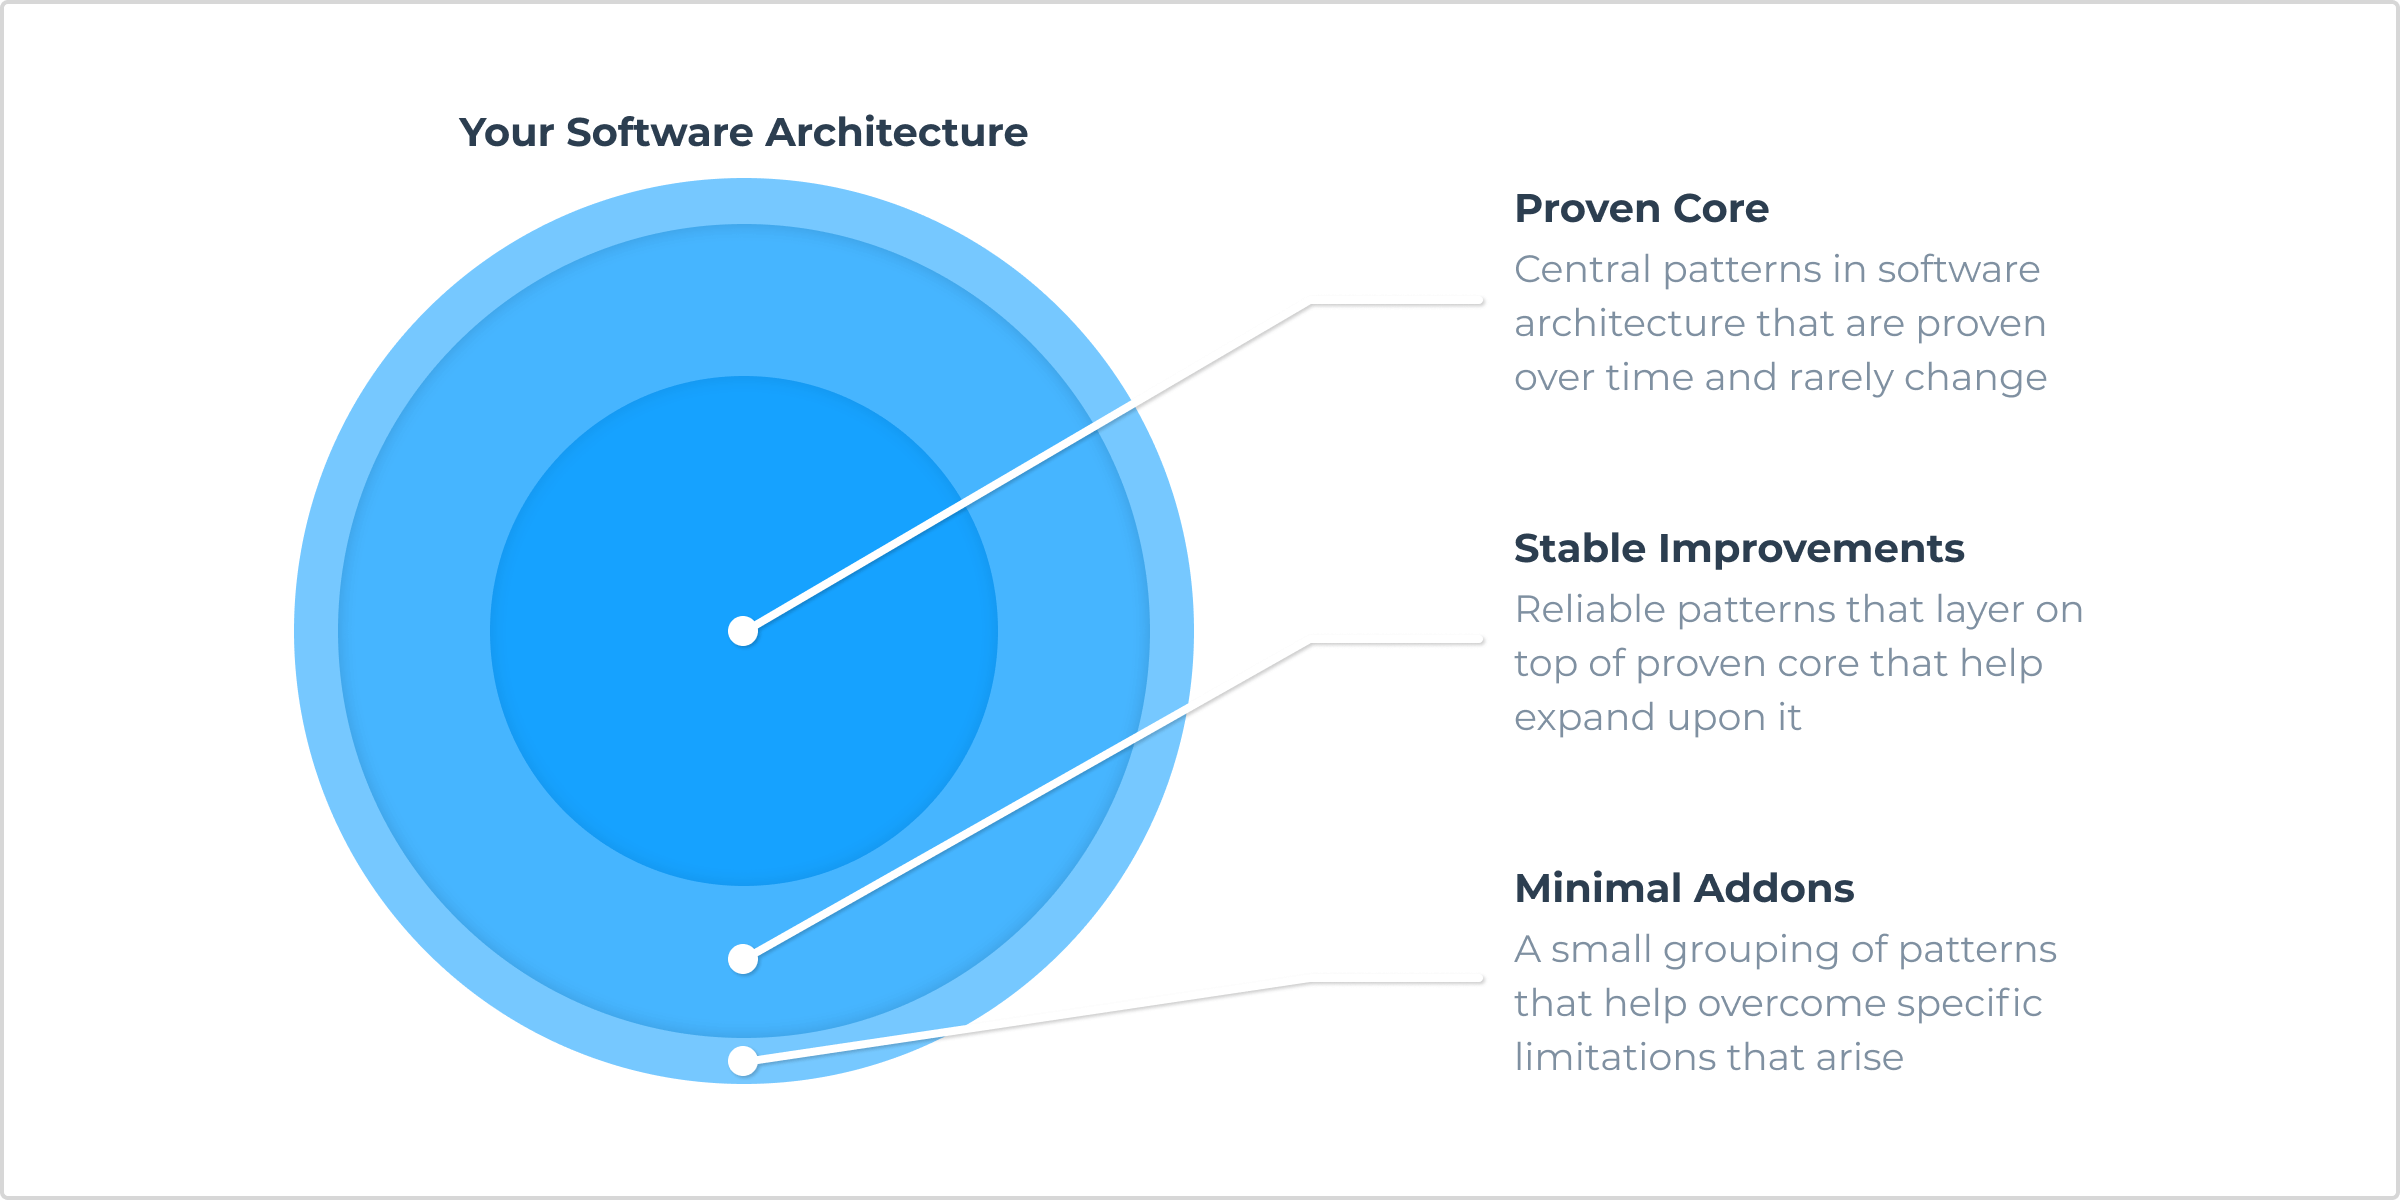 Your architecture should have a proven core with stable improvements and minimal add-ons